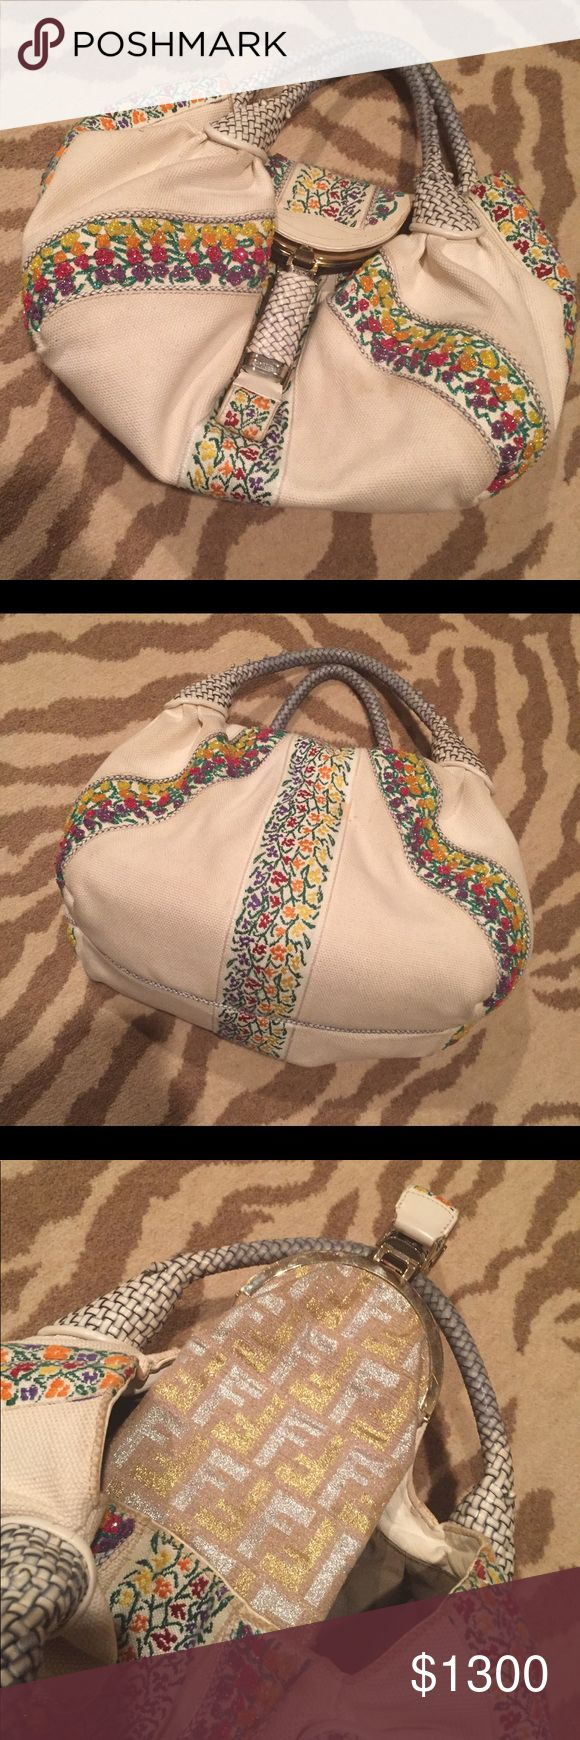 """LIMITED EDITION AUTHENTIC FENDI SPY BAG LIMITED EDITION AUTHENTIC FENDI SPY BAG IN EXCELLENT CONDITION. SUPER RARE! EMBROIDERED FLOWERS WITH BEADING. COMES WITH FENDI DUST BAG. Measurements: Handle Drop 6"""", Height 8"""", Width 19"""", Depth 7"""" Fendi Bags"""